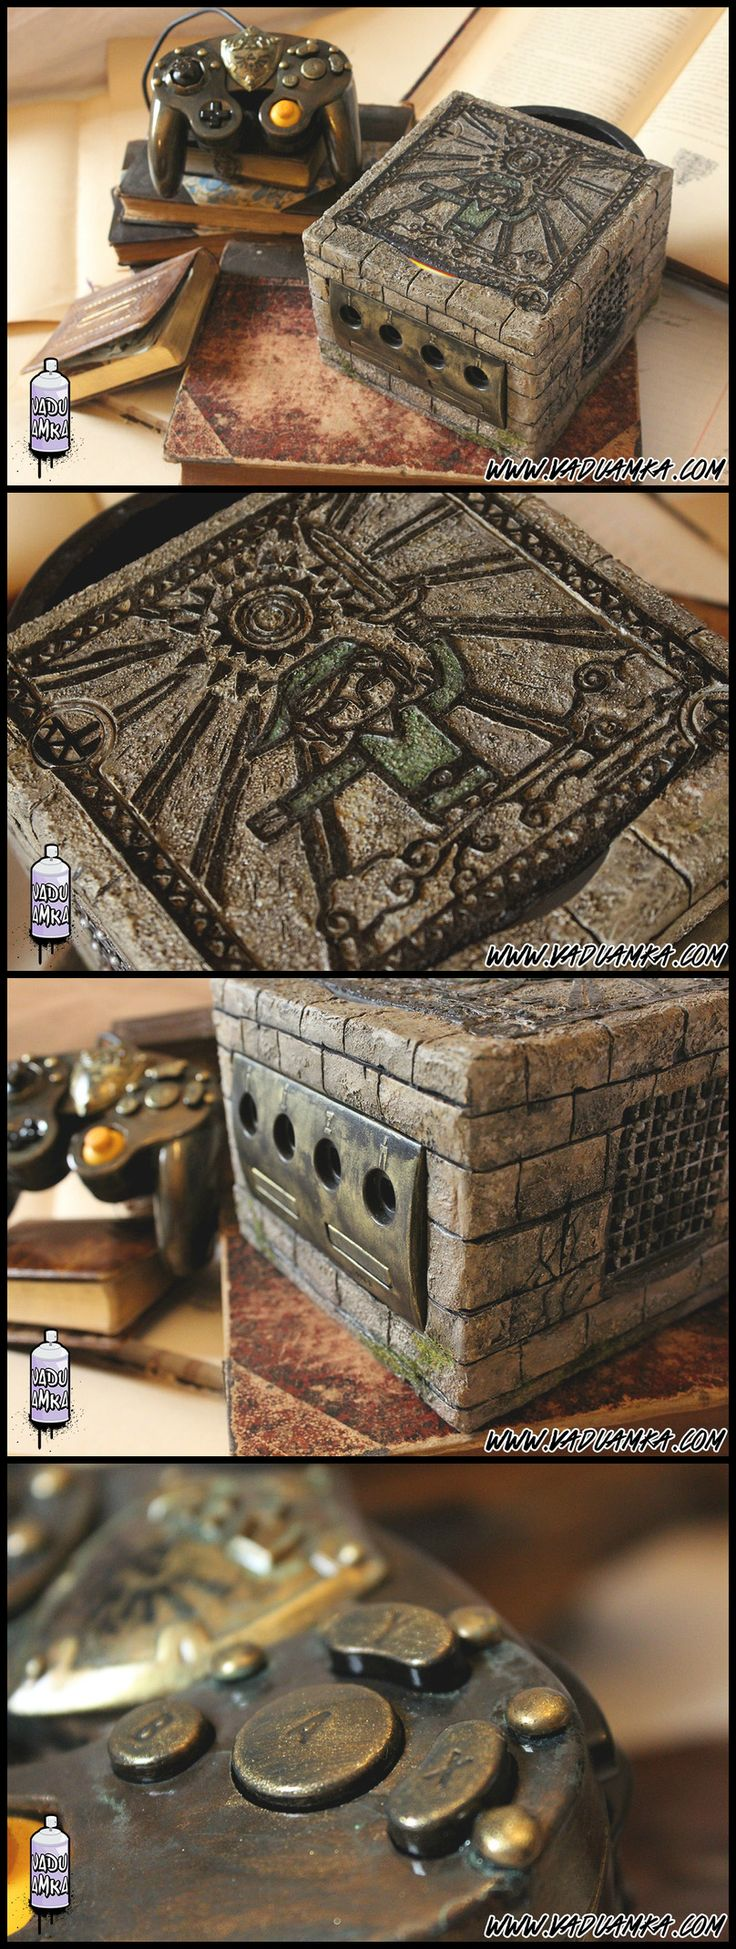 Custom Nintendo GameCube - The Legend Of Zelda: The Wind Waker [RELIC] by Vaduamka>>>>> I also want this